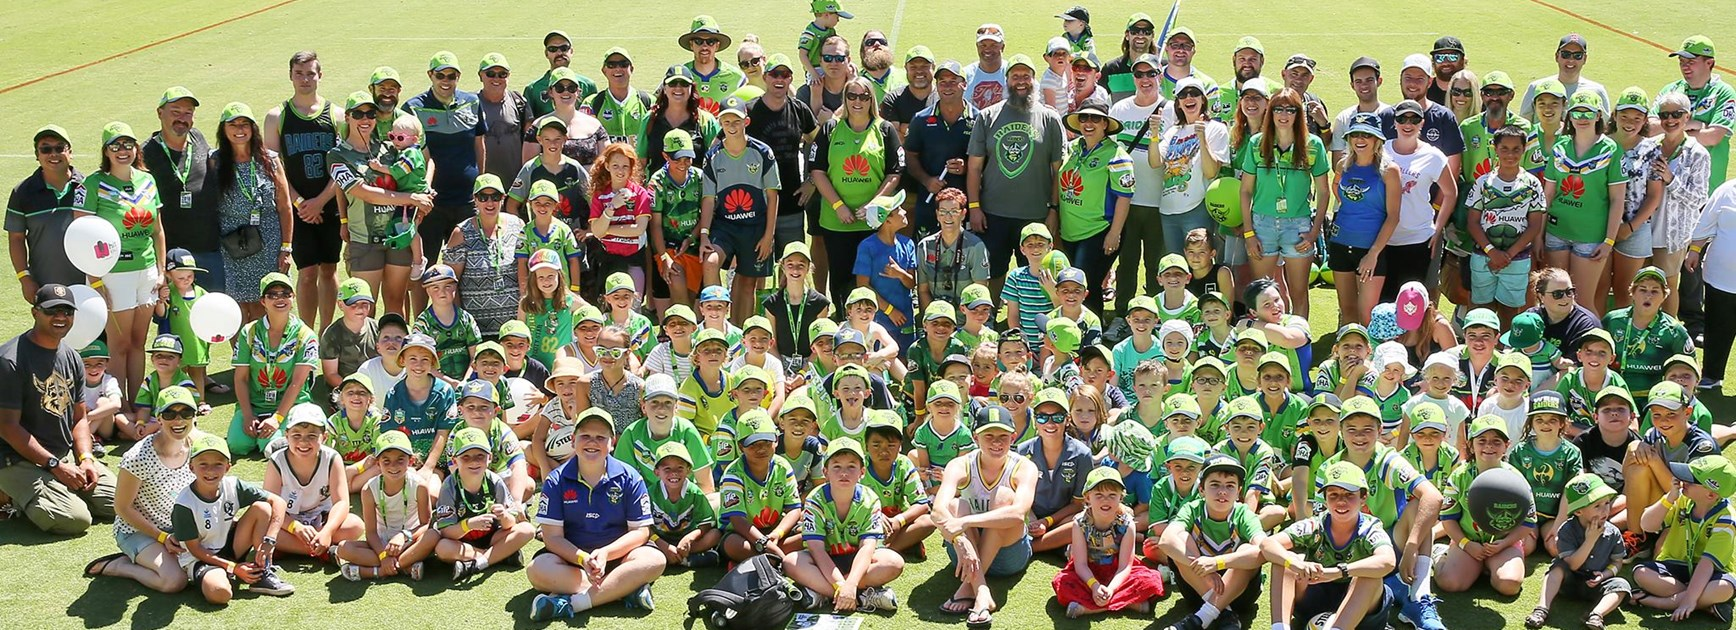 Canberra Raiders 2019 fan day